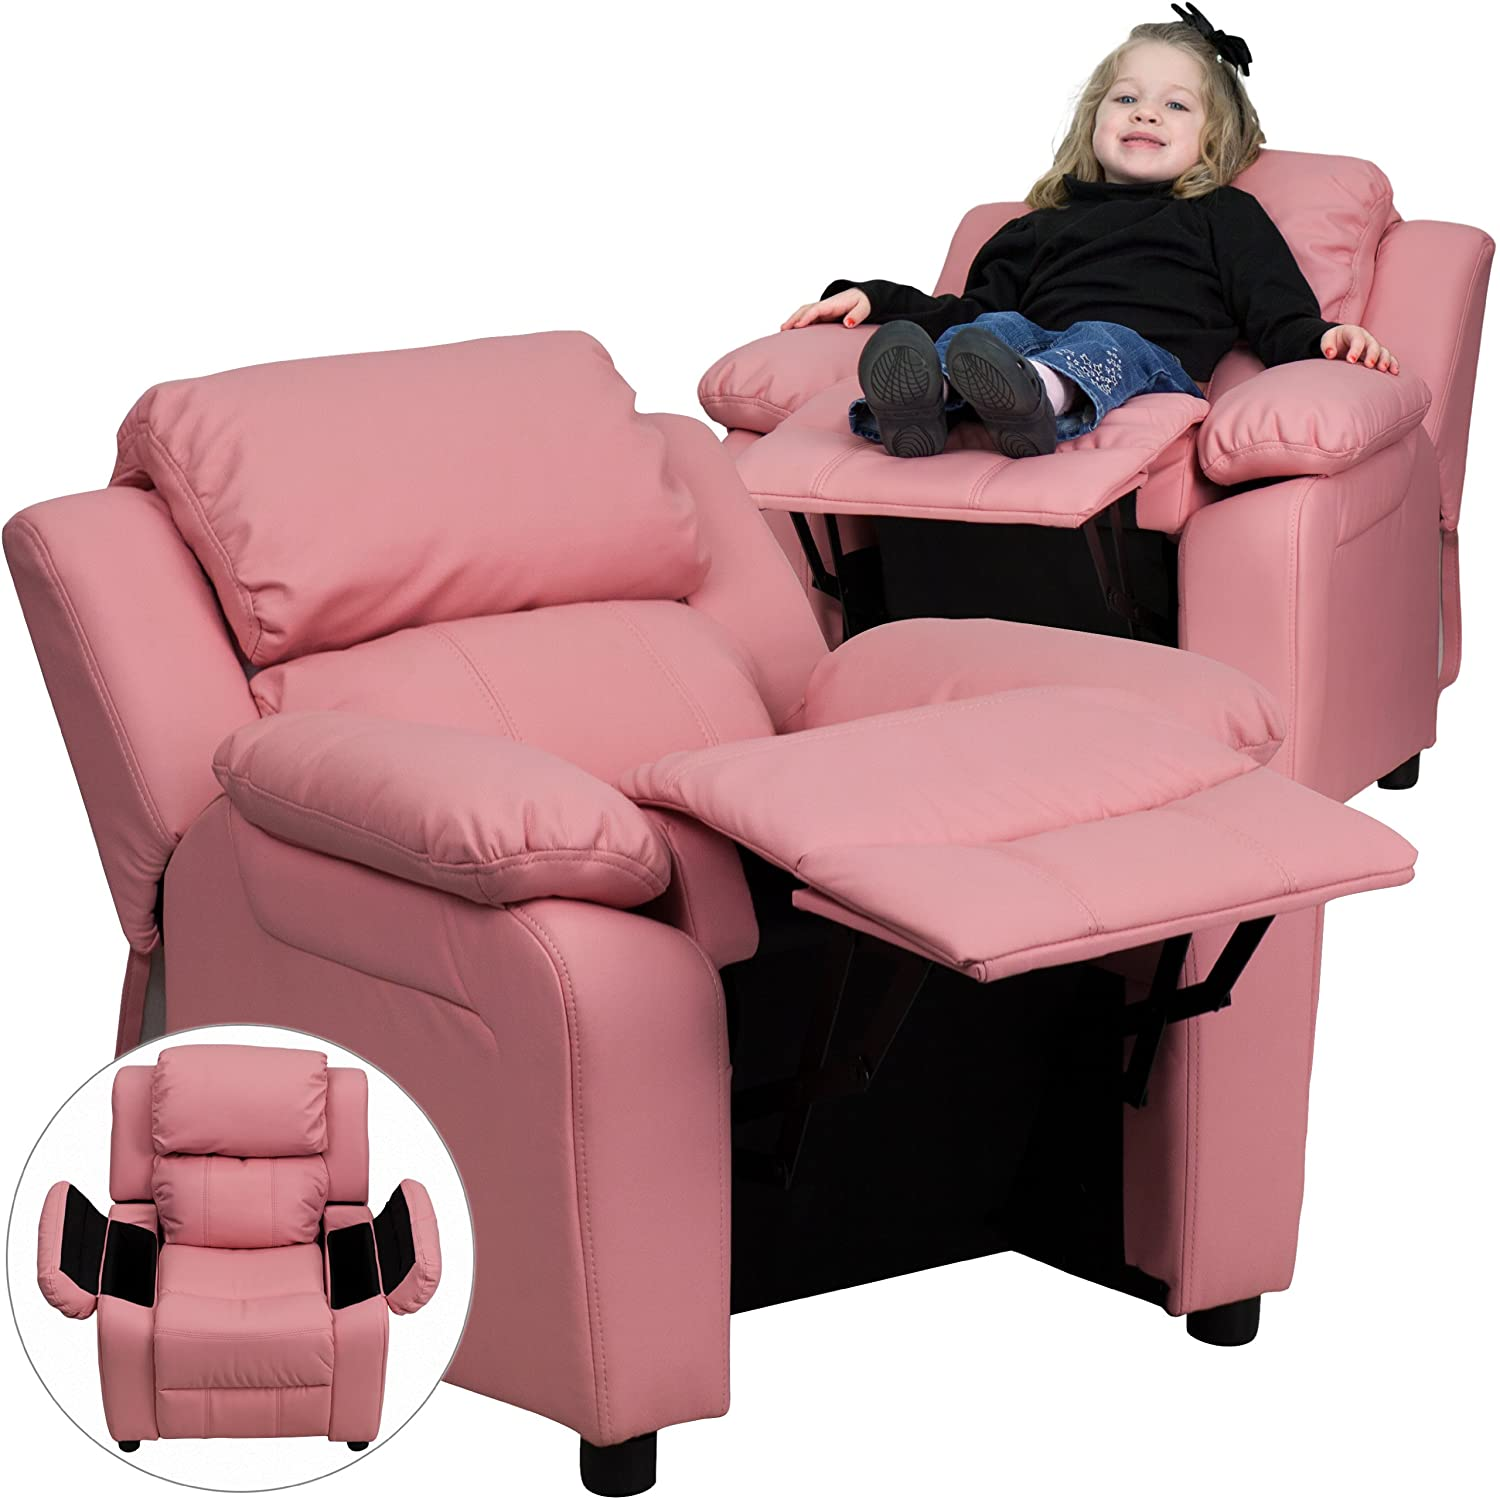 Amazon.com: Flash Furniture Deluxe Padded Contemporary Pink Vinyl Kids  Recliner With Storage Arms: Kitchen U0026 Dining